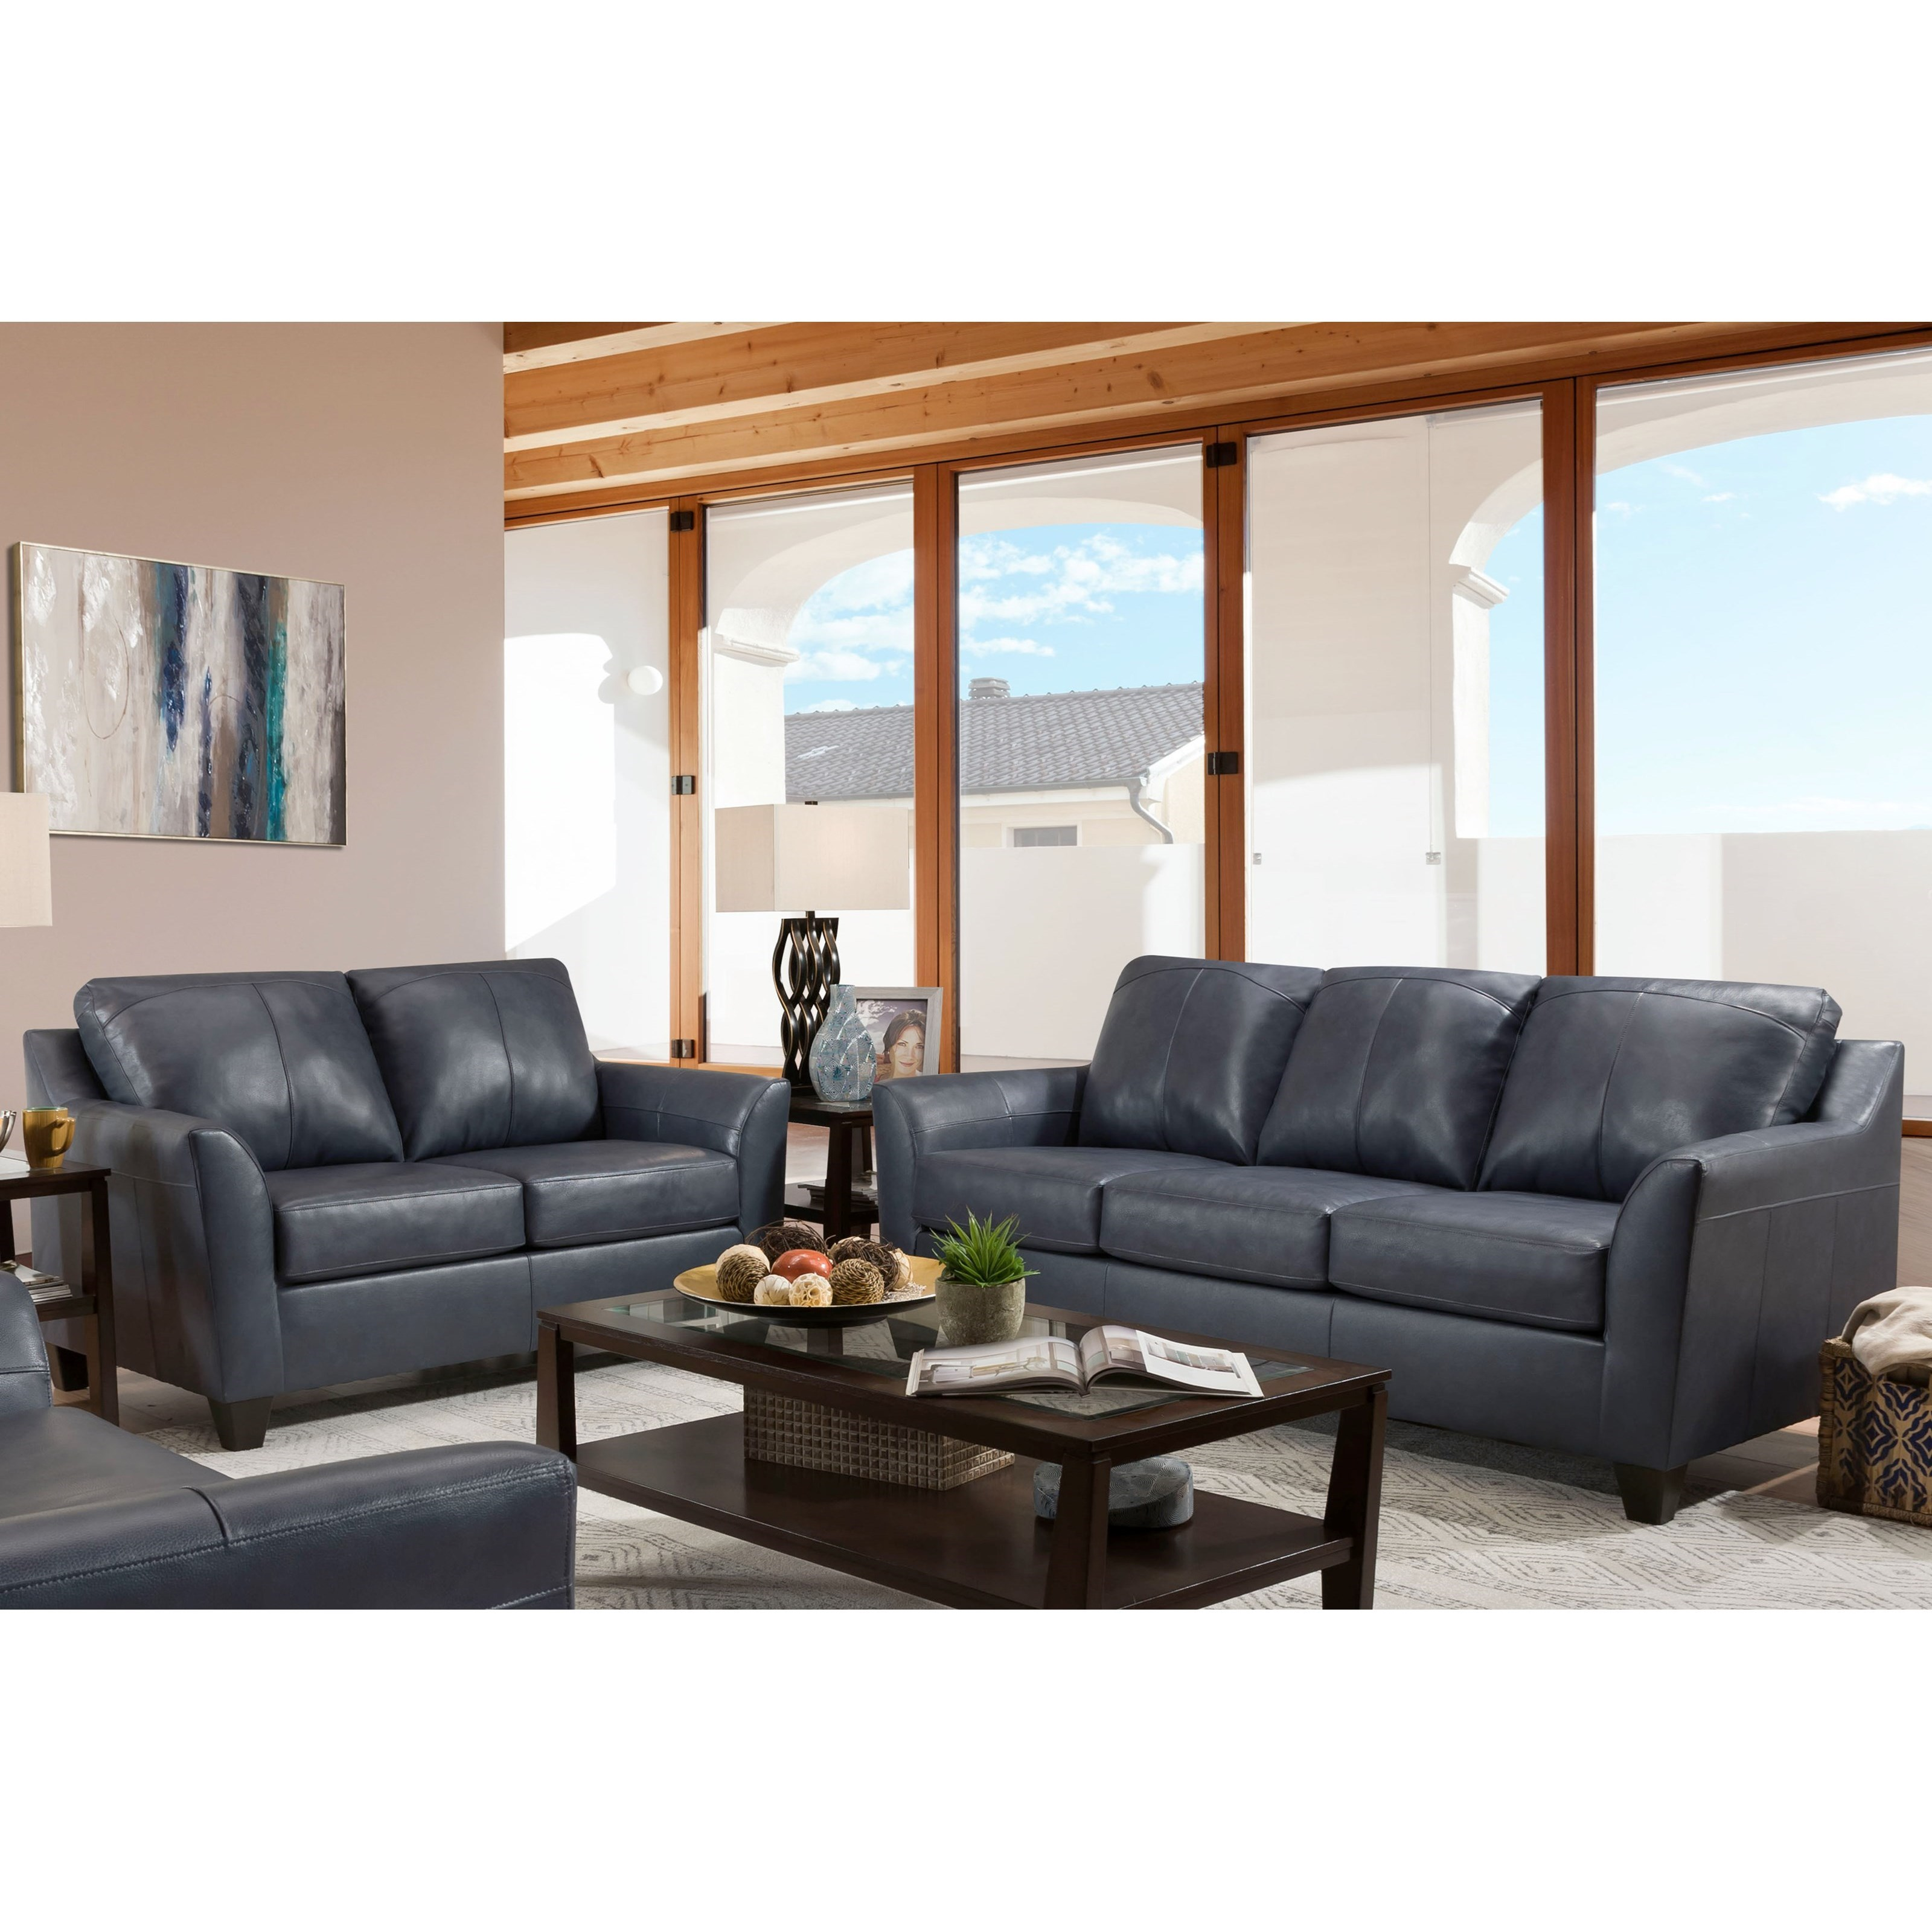 2029 Stationary Living Room Group by Lane at Esprit Decor Home Furnishings